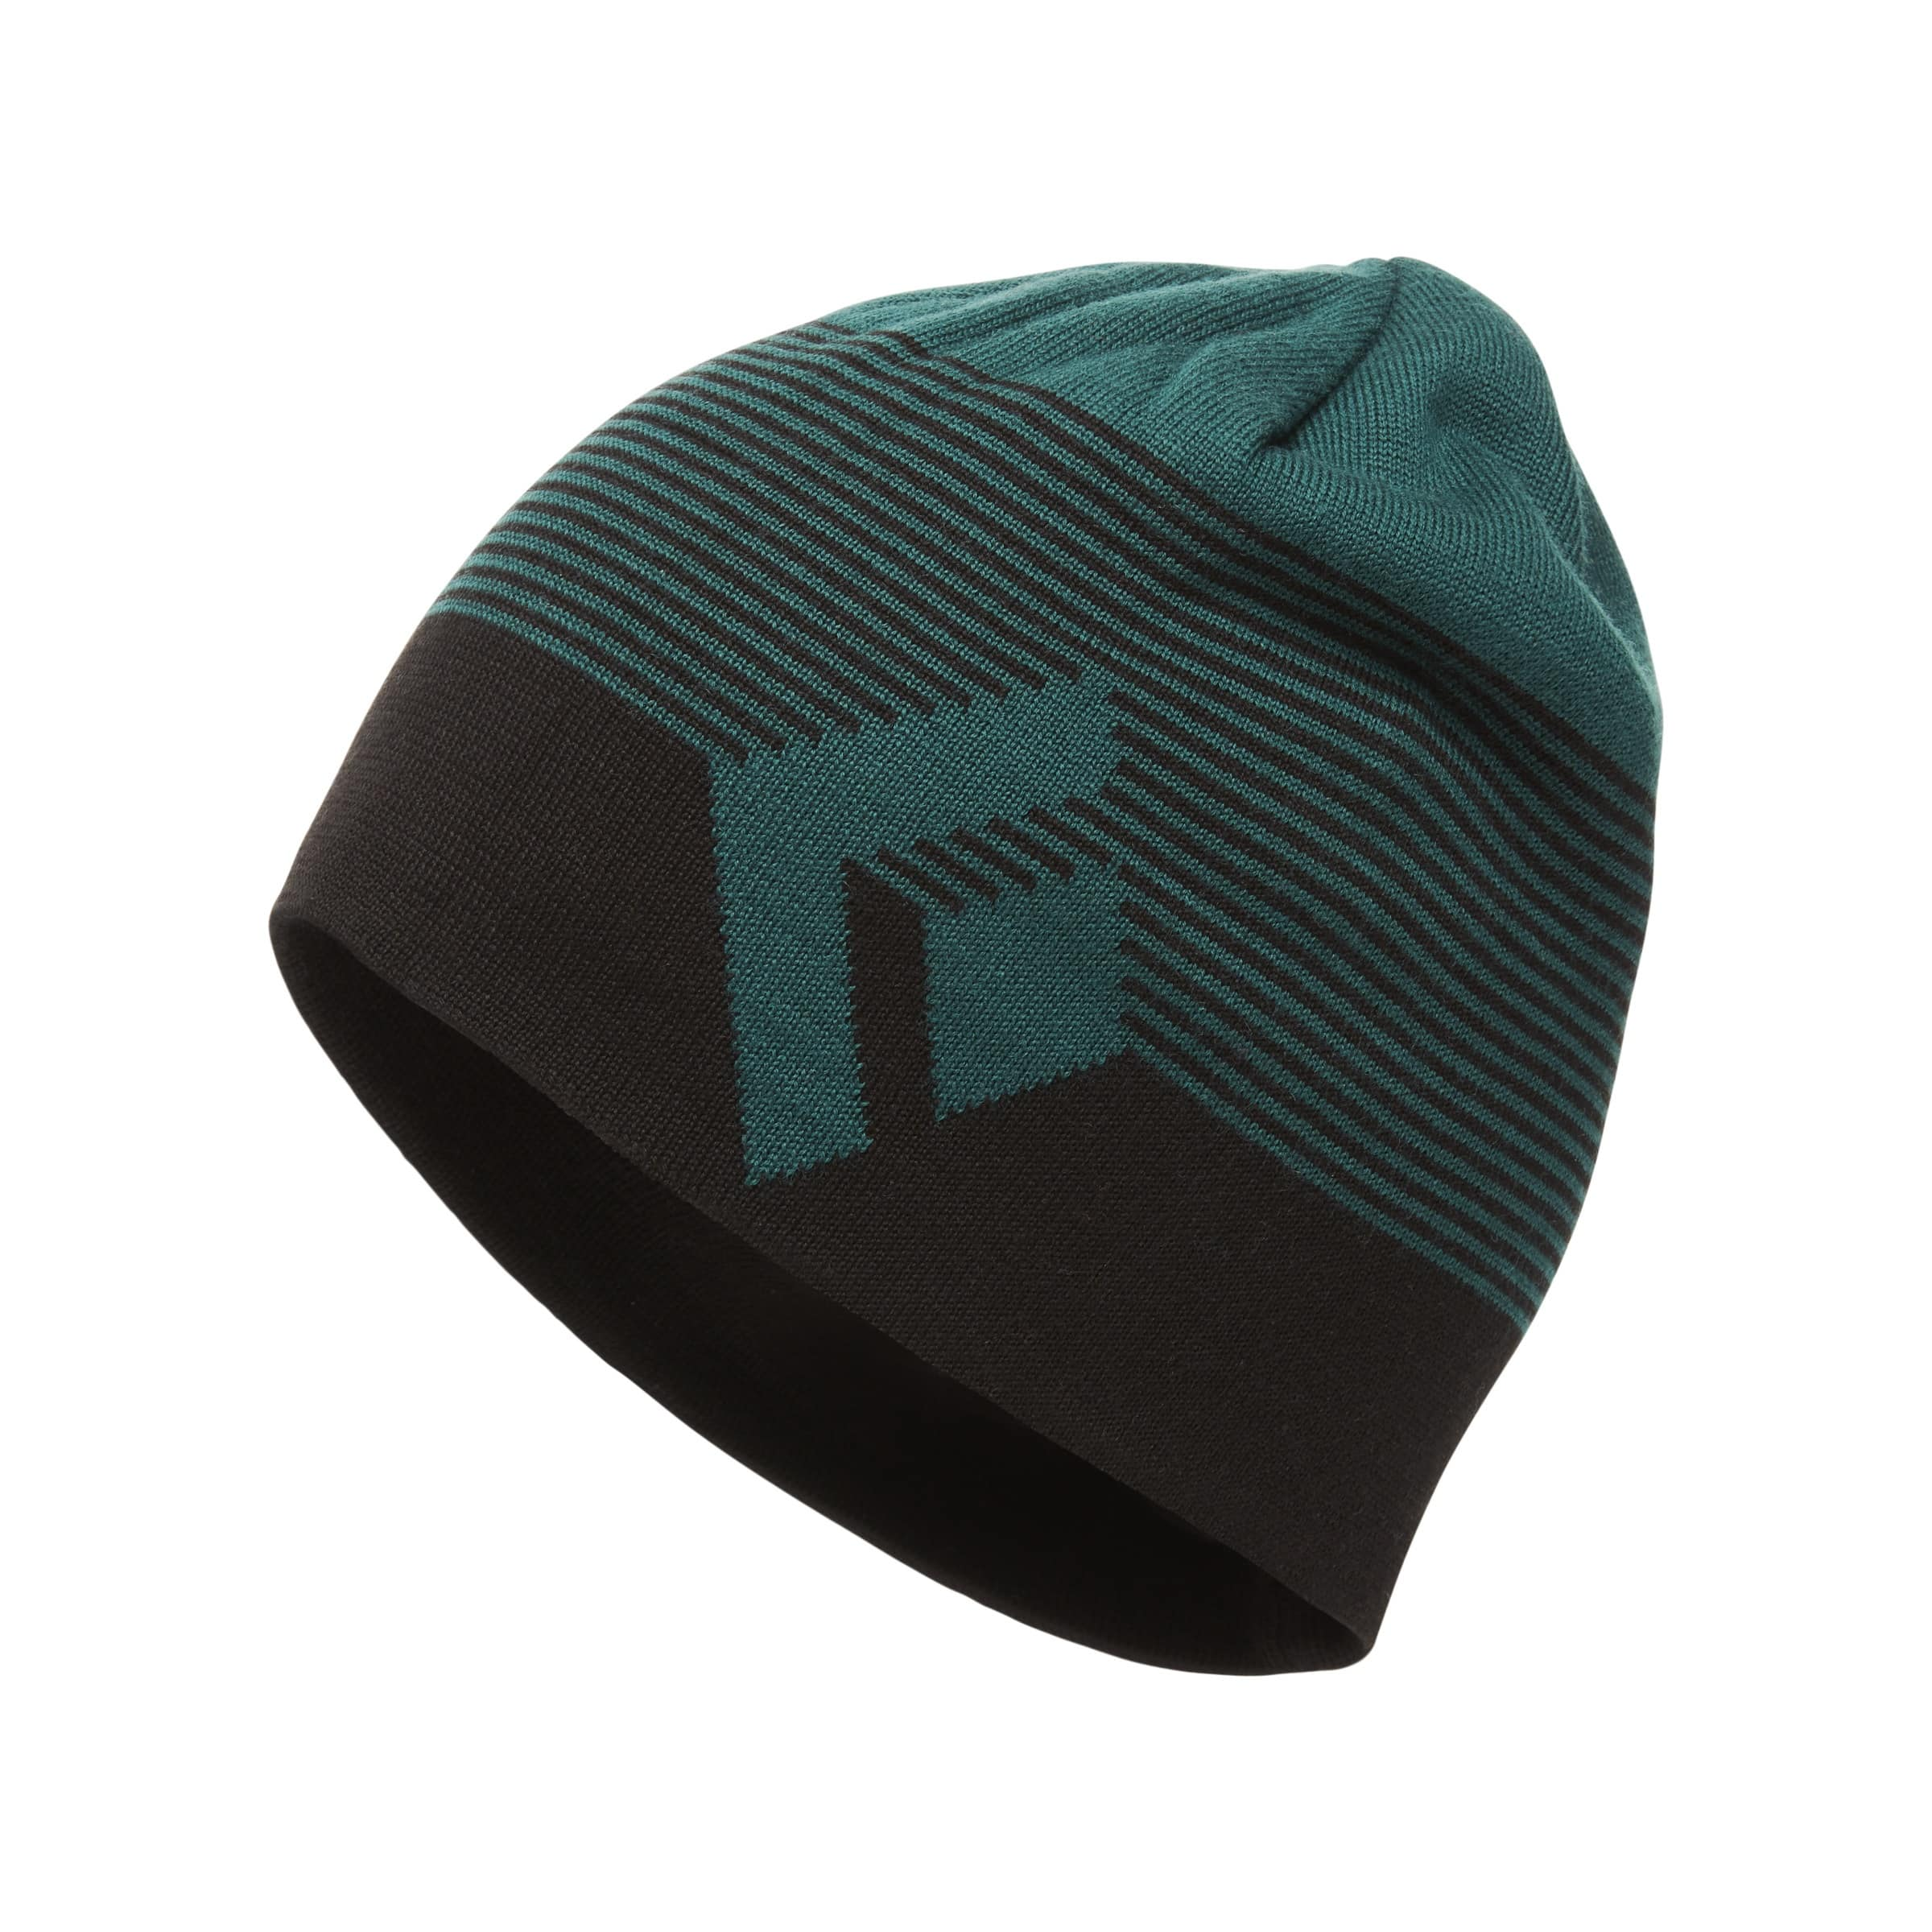 443ed6bacac Buy Black Diamond Walter Beanie from Outnorth